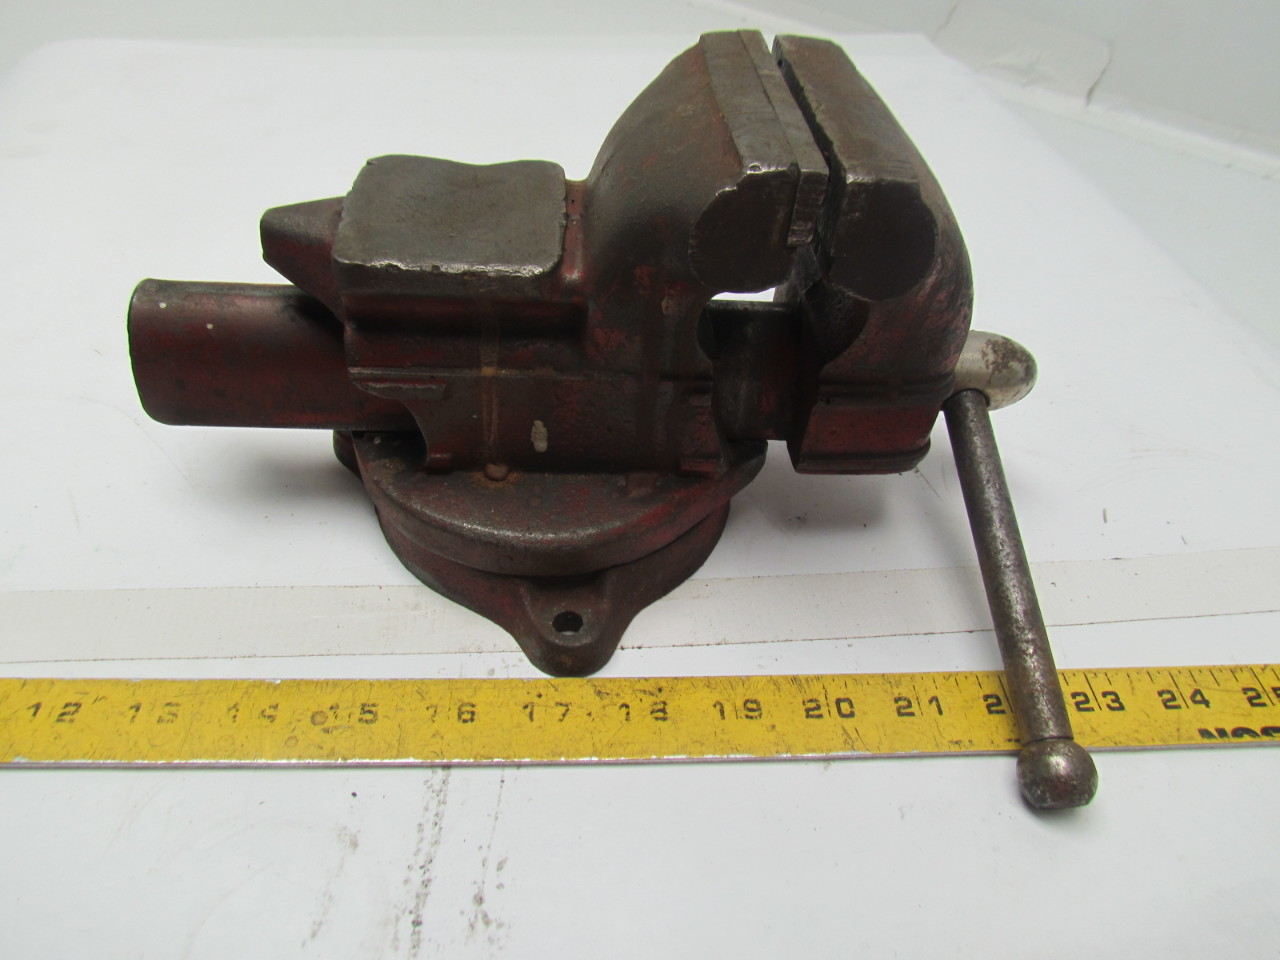 Vintage Bench Vise 3 1 2 Jaws Opens To 3 1 4 Man Cave